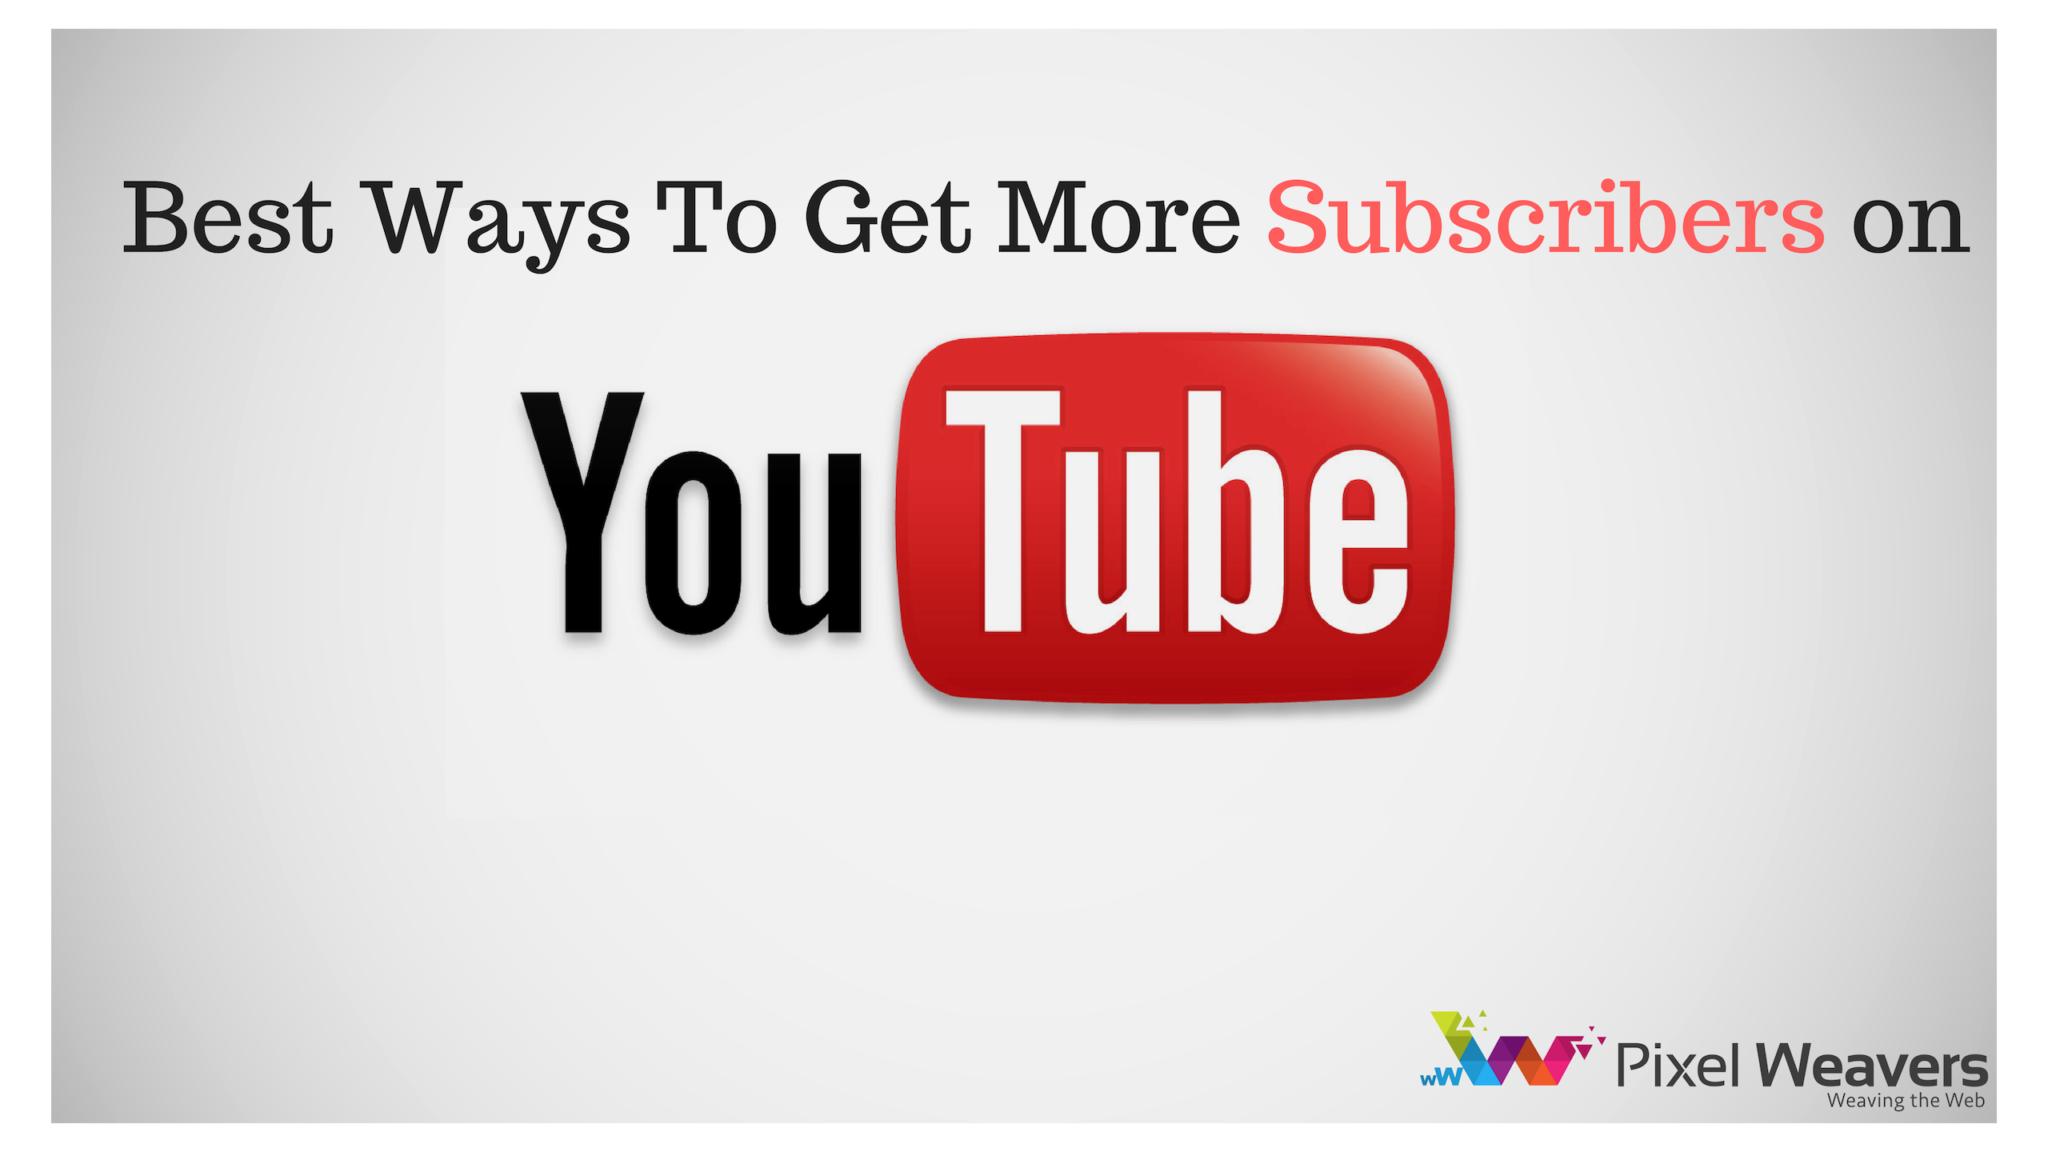 Best Ways To Get More Subscribers on YouTube in 2019